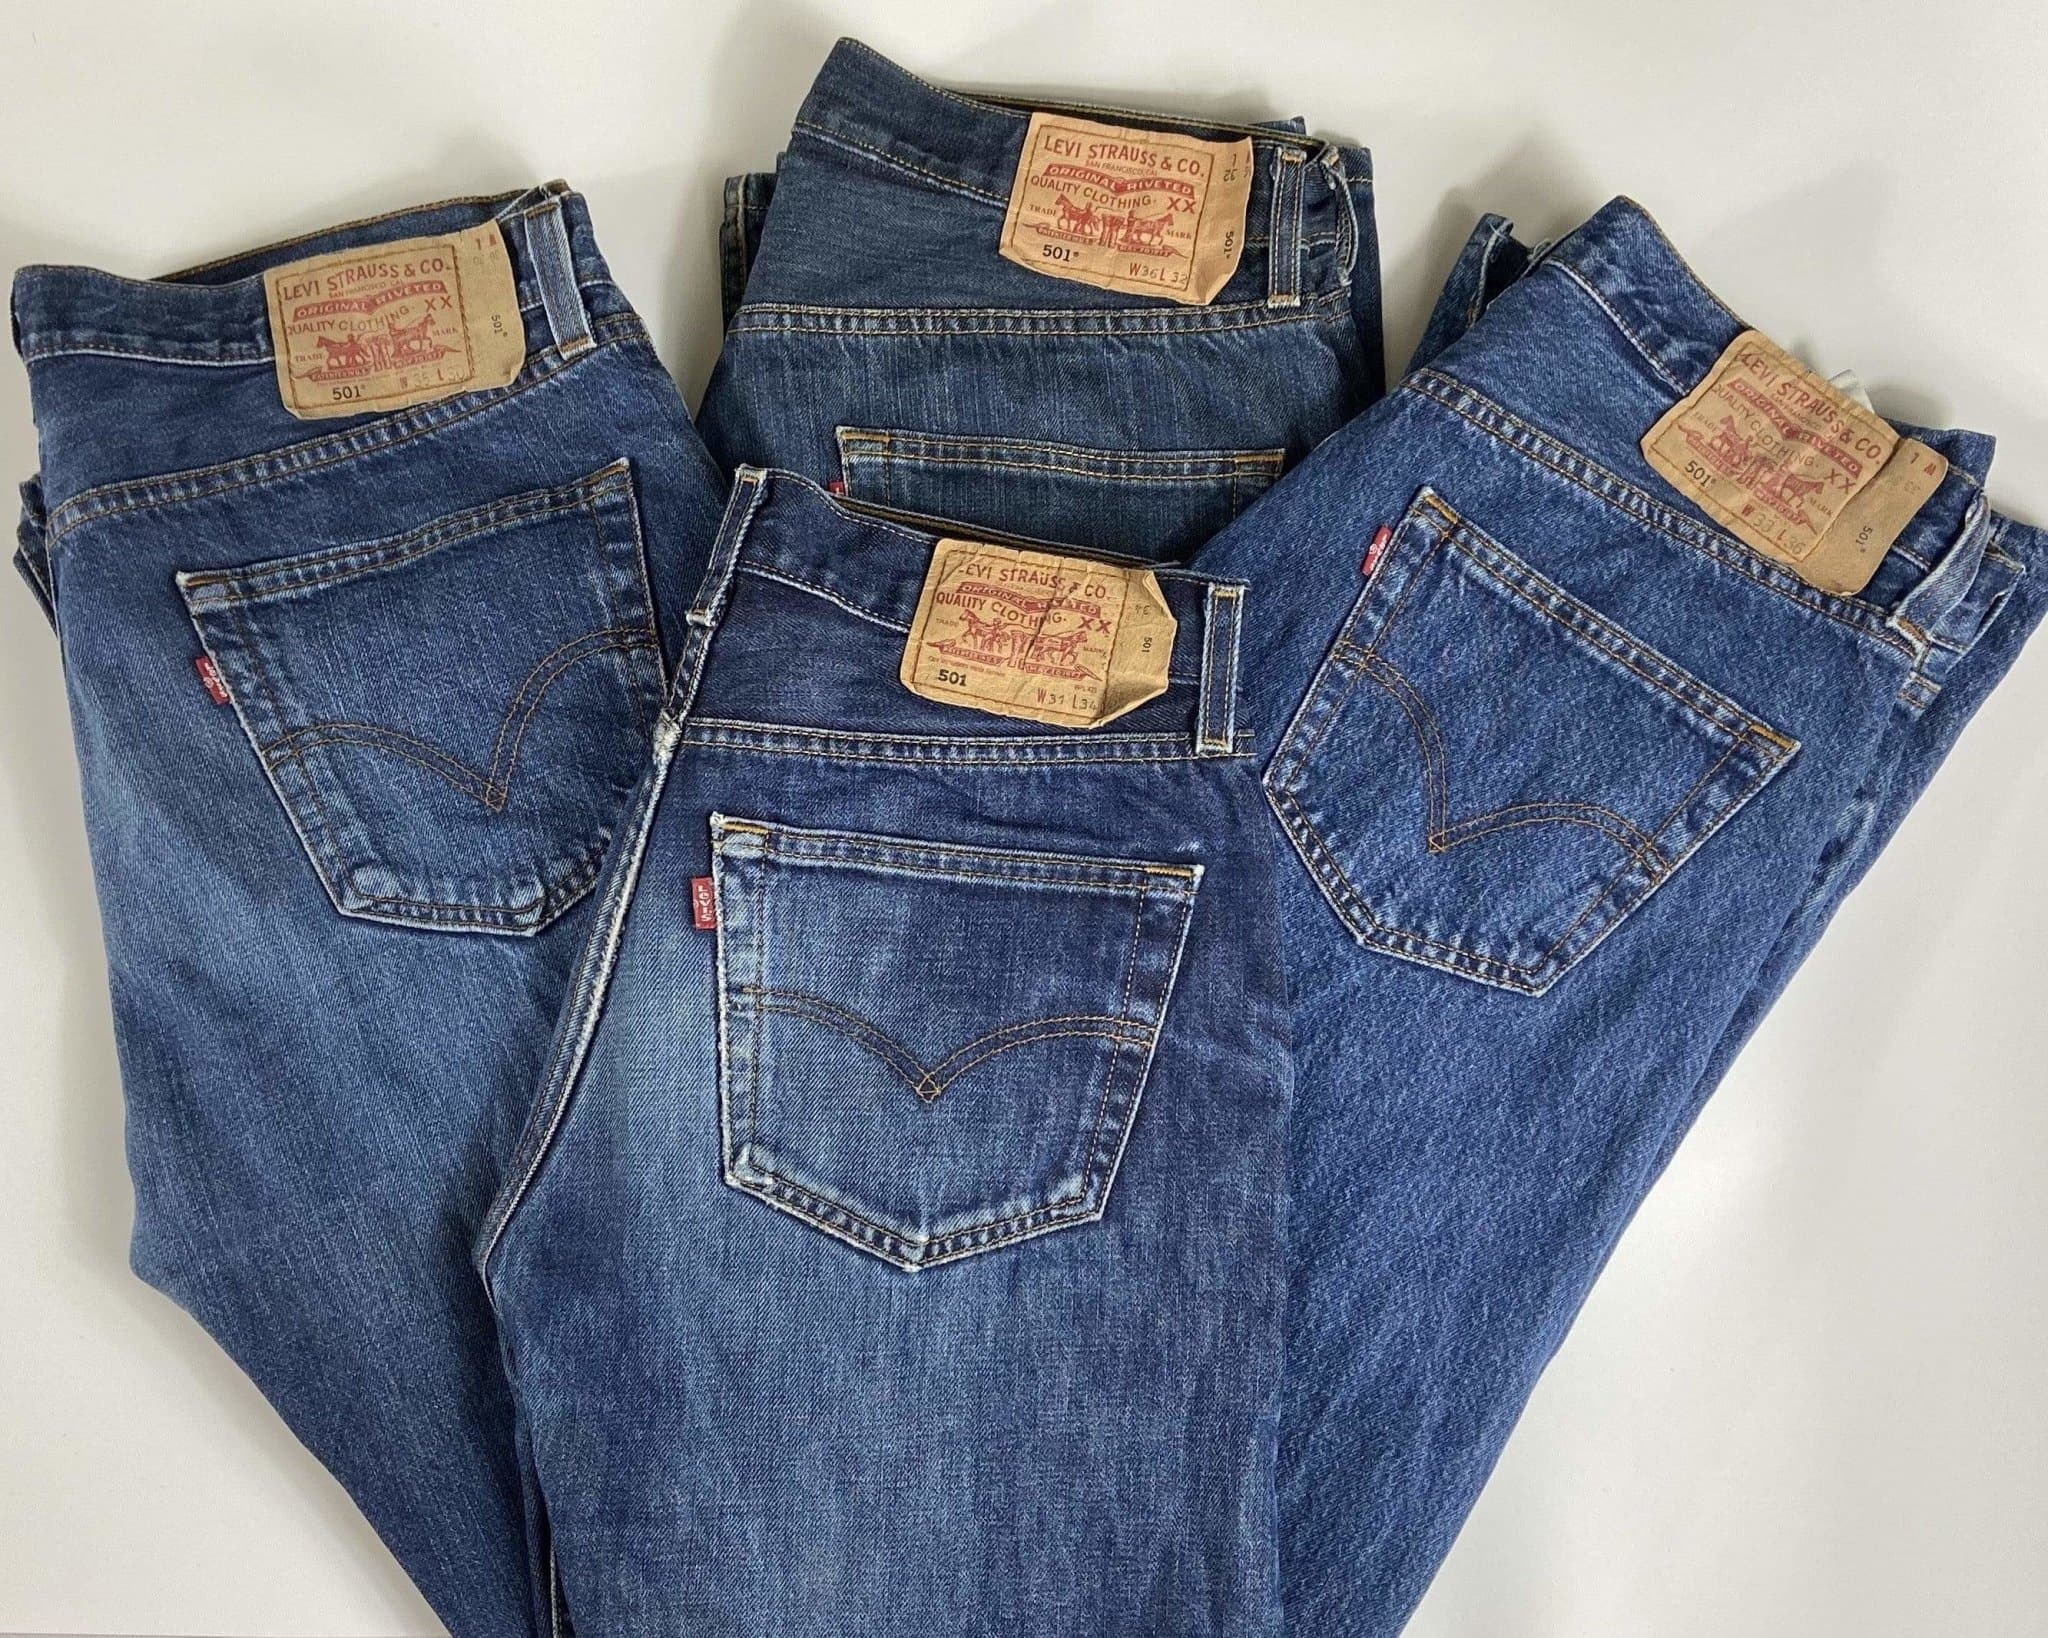 Vintage Levi's Classic 501 Jeans W34 L32 (DHLB2) - Discounted Deals UK